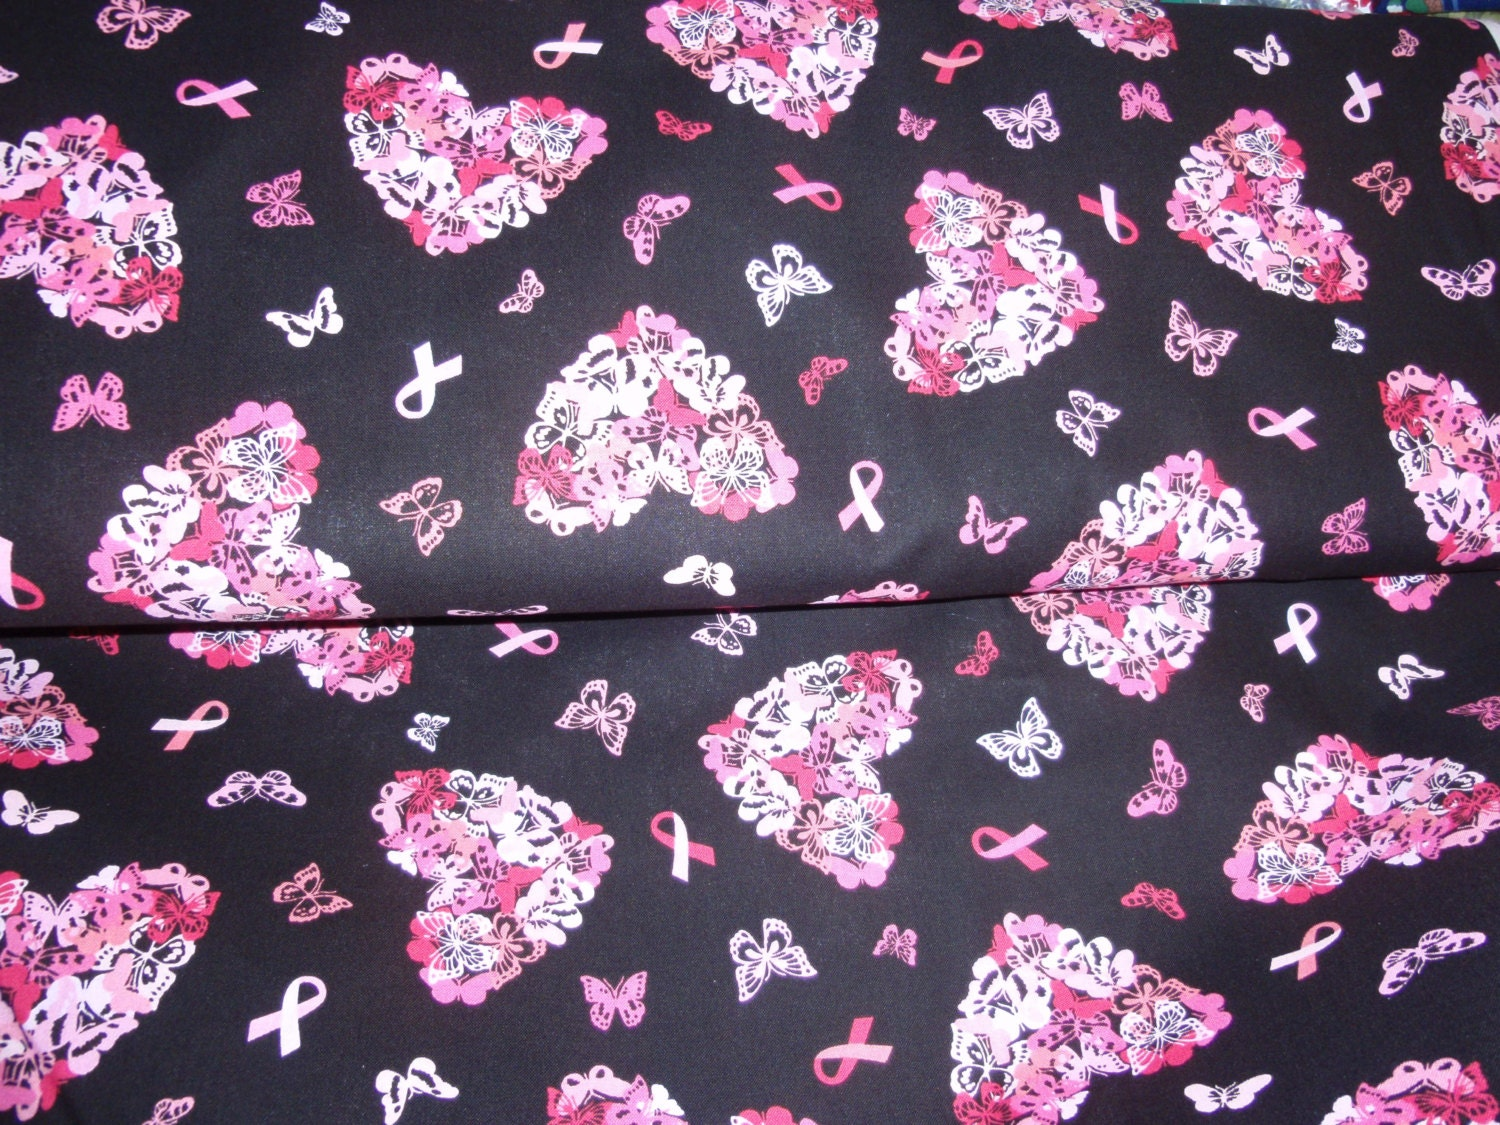 Breast Cancer Awareness Pink Ribbon And Butterfly Heart